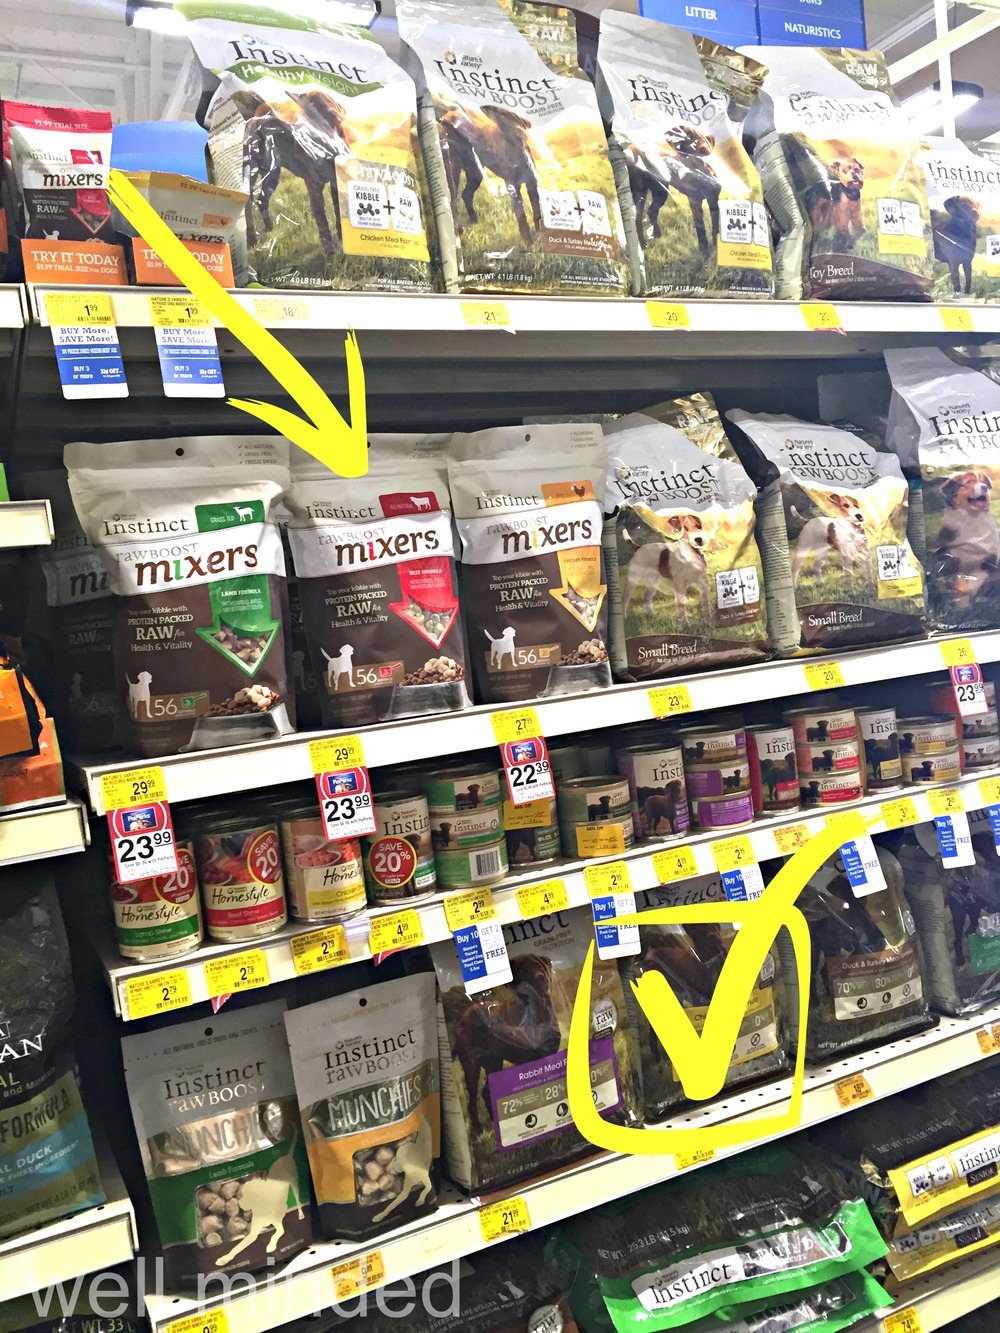 It was easy to find Instinct Raw Boost Mixers with the rest of Nature's Variety Instinct lineup at PetSmart.